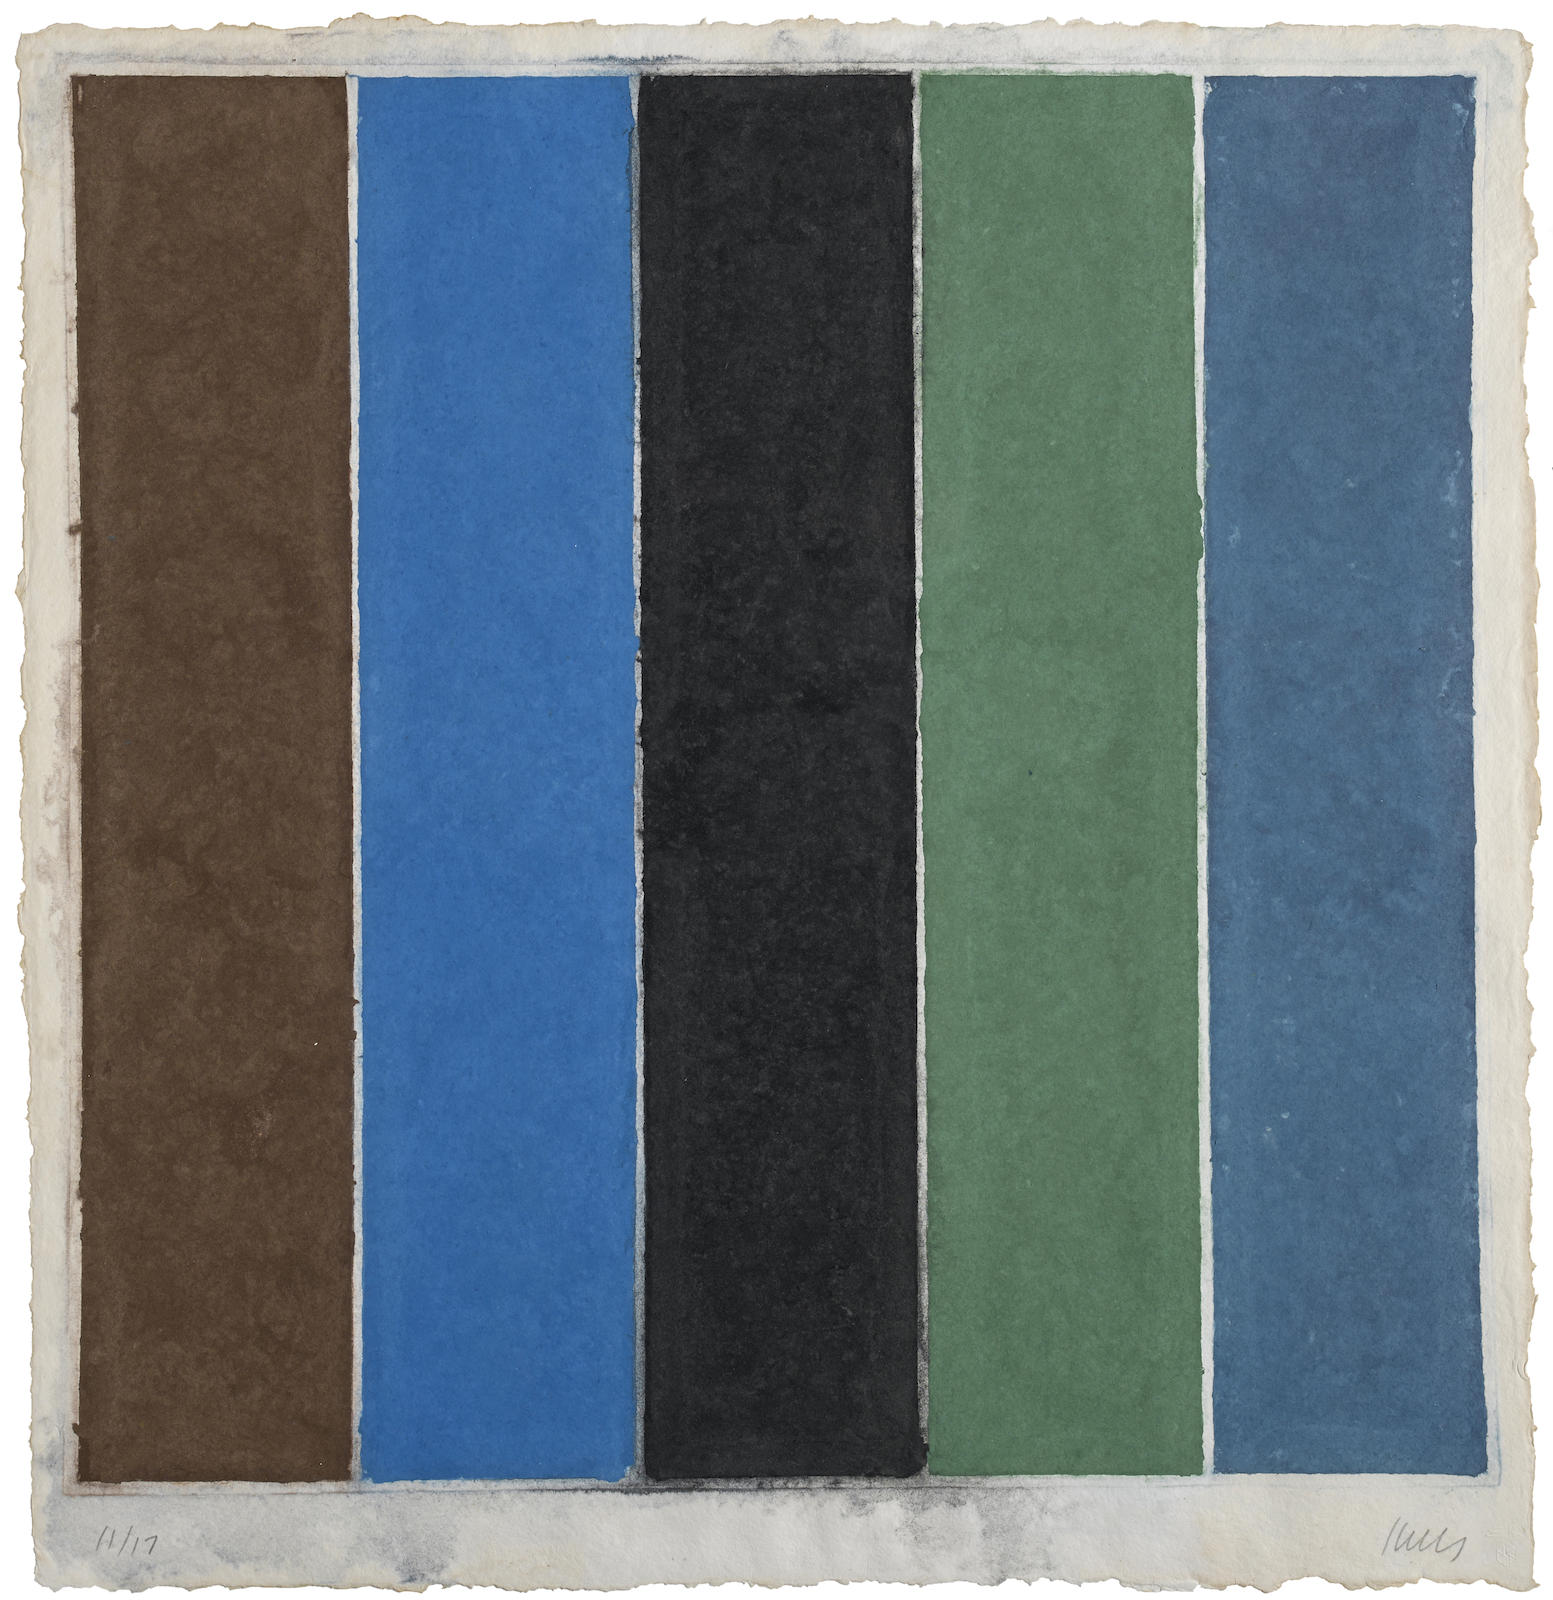 Ellsworth Kelly-Colored Paper Image XIX (Brown/Blue/Black/Green/Violet)-1976